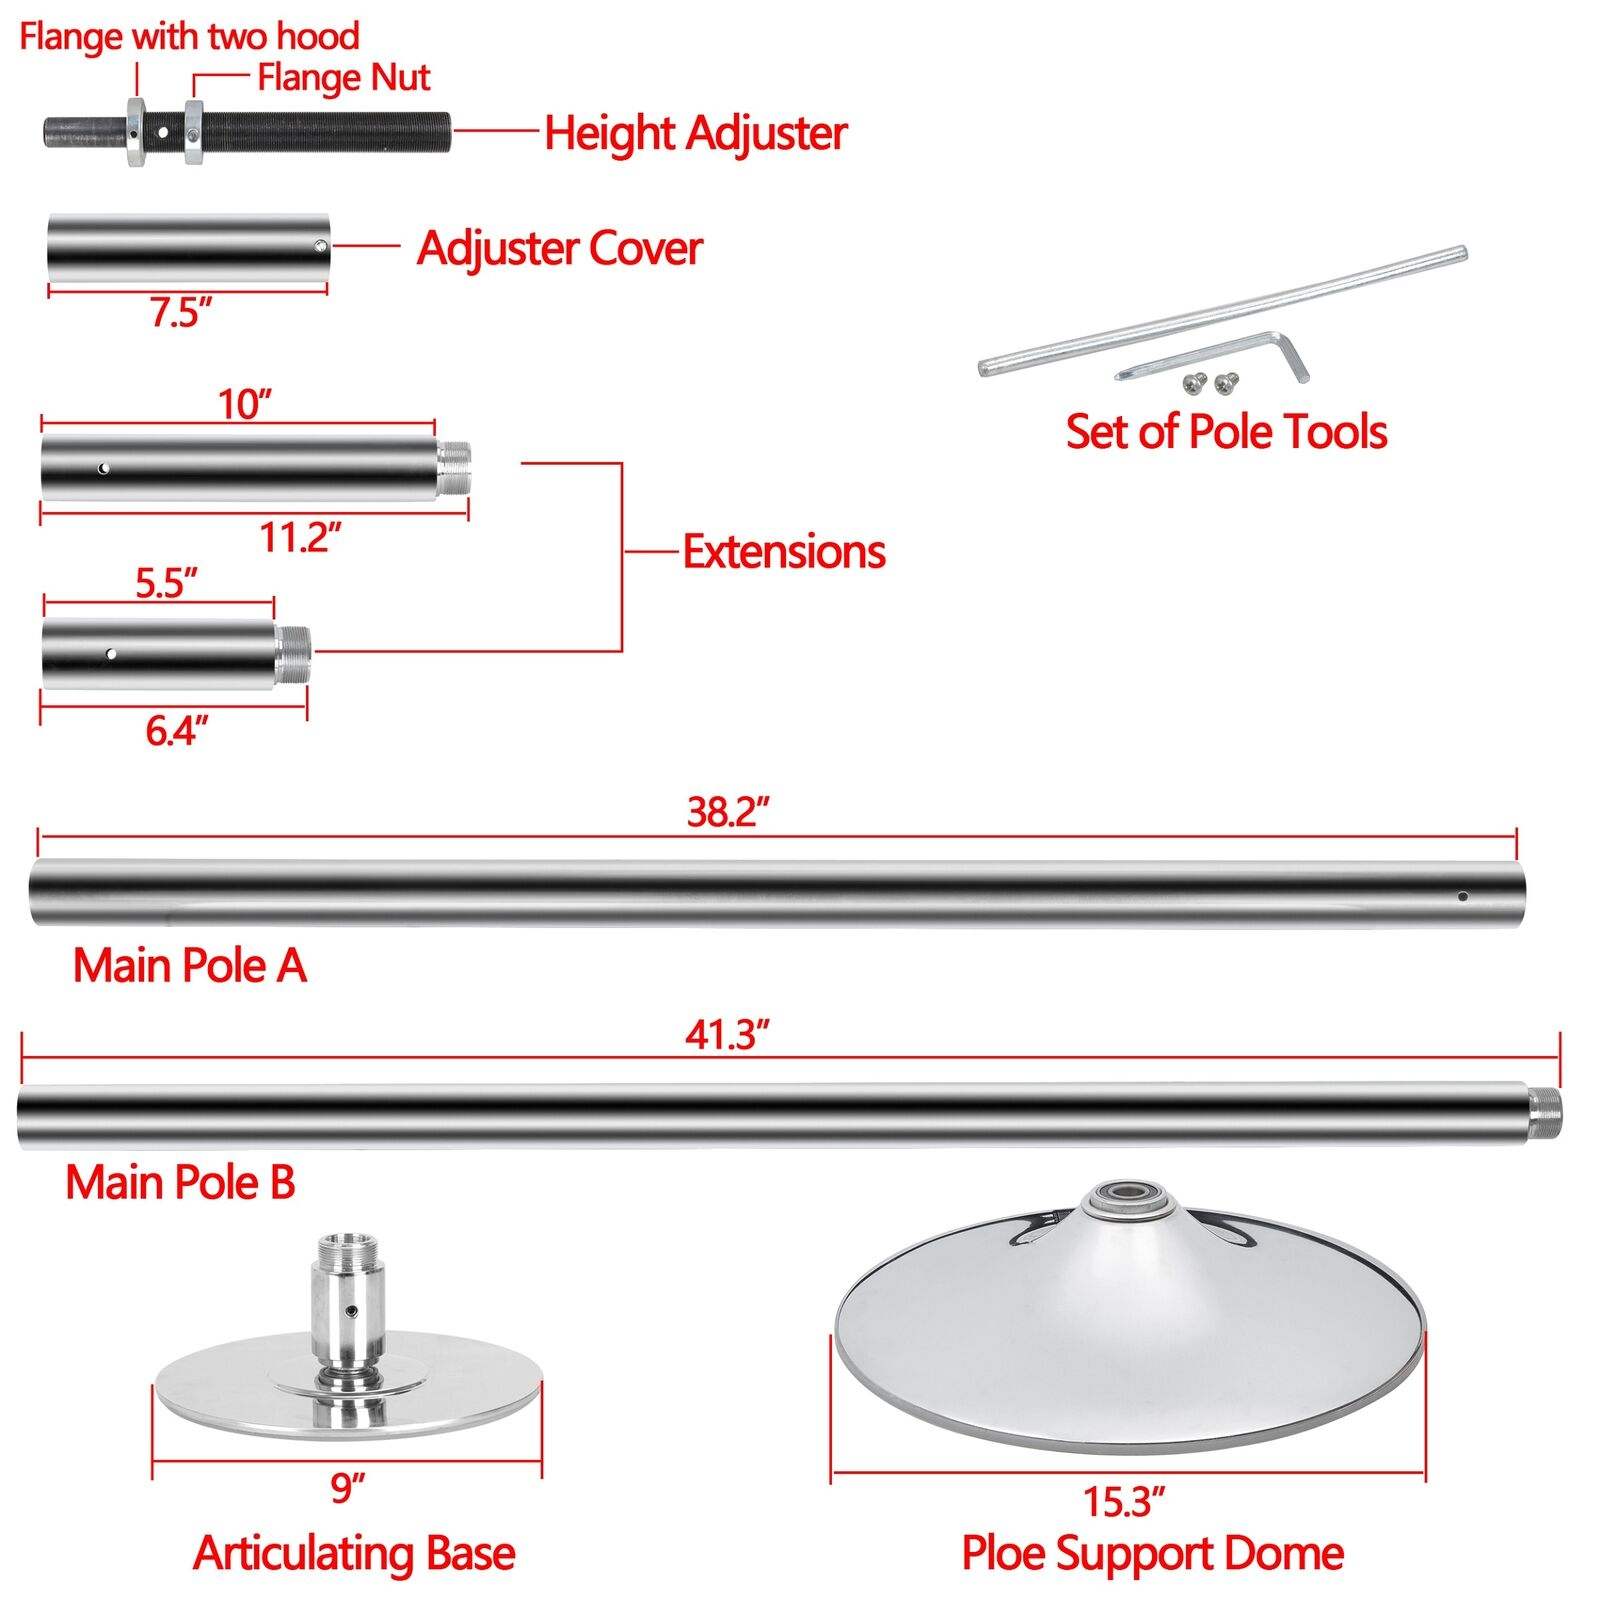 9FT Portable Steel Dance Pole Full Kit Fitness Dancing Stripper Exercise Club Pa Dance Poles & Accessories